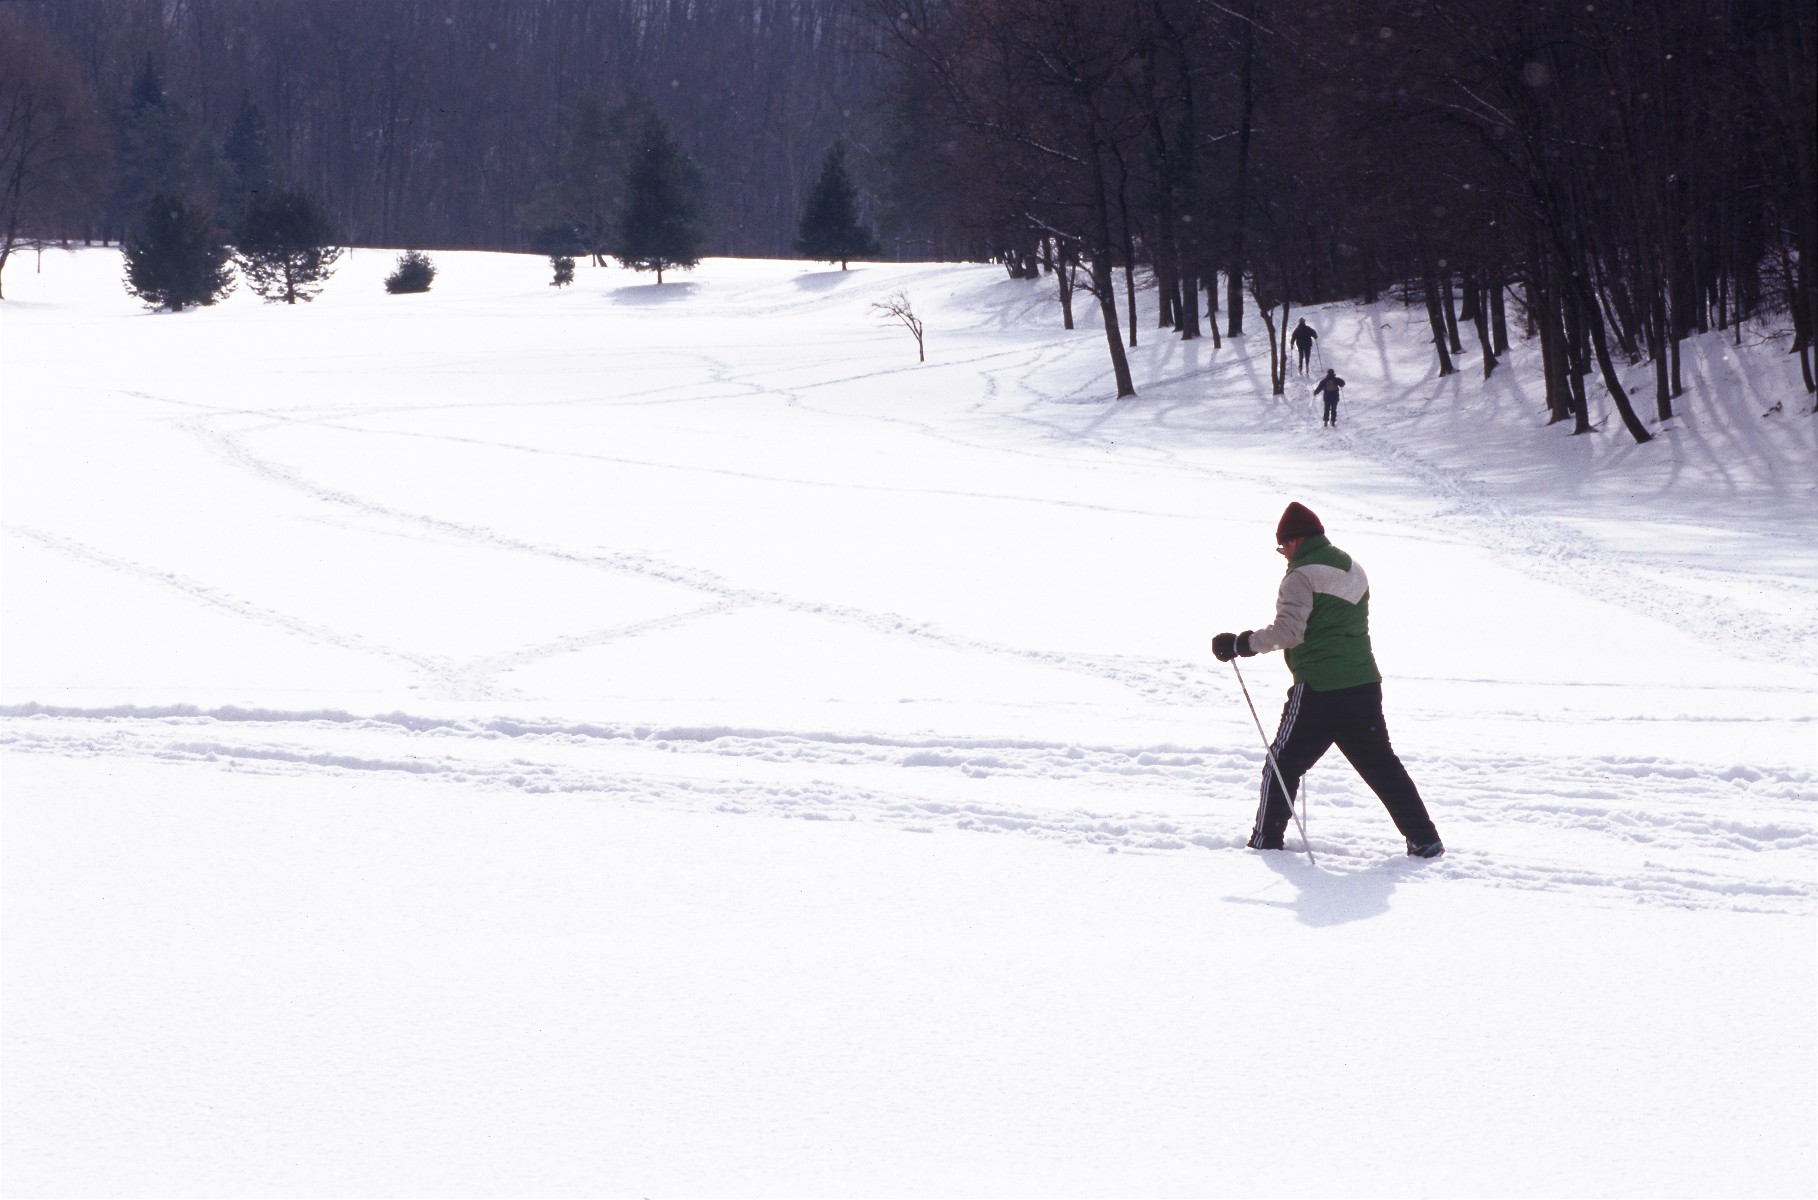 MAKE TRACKS TO CLEVELAND METROPARKS! WINTER RECREATION FUN HAS BEGUN